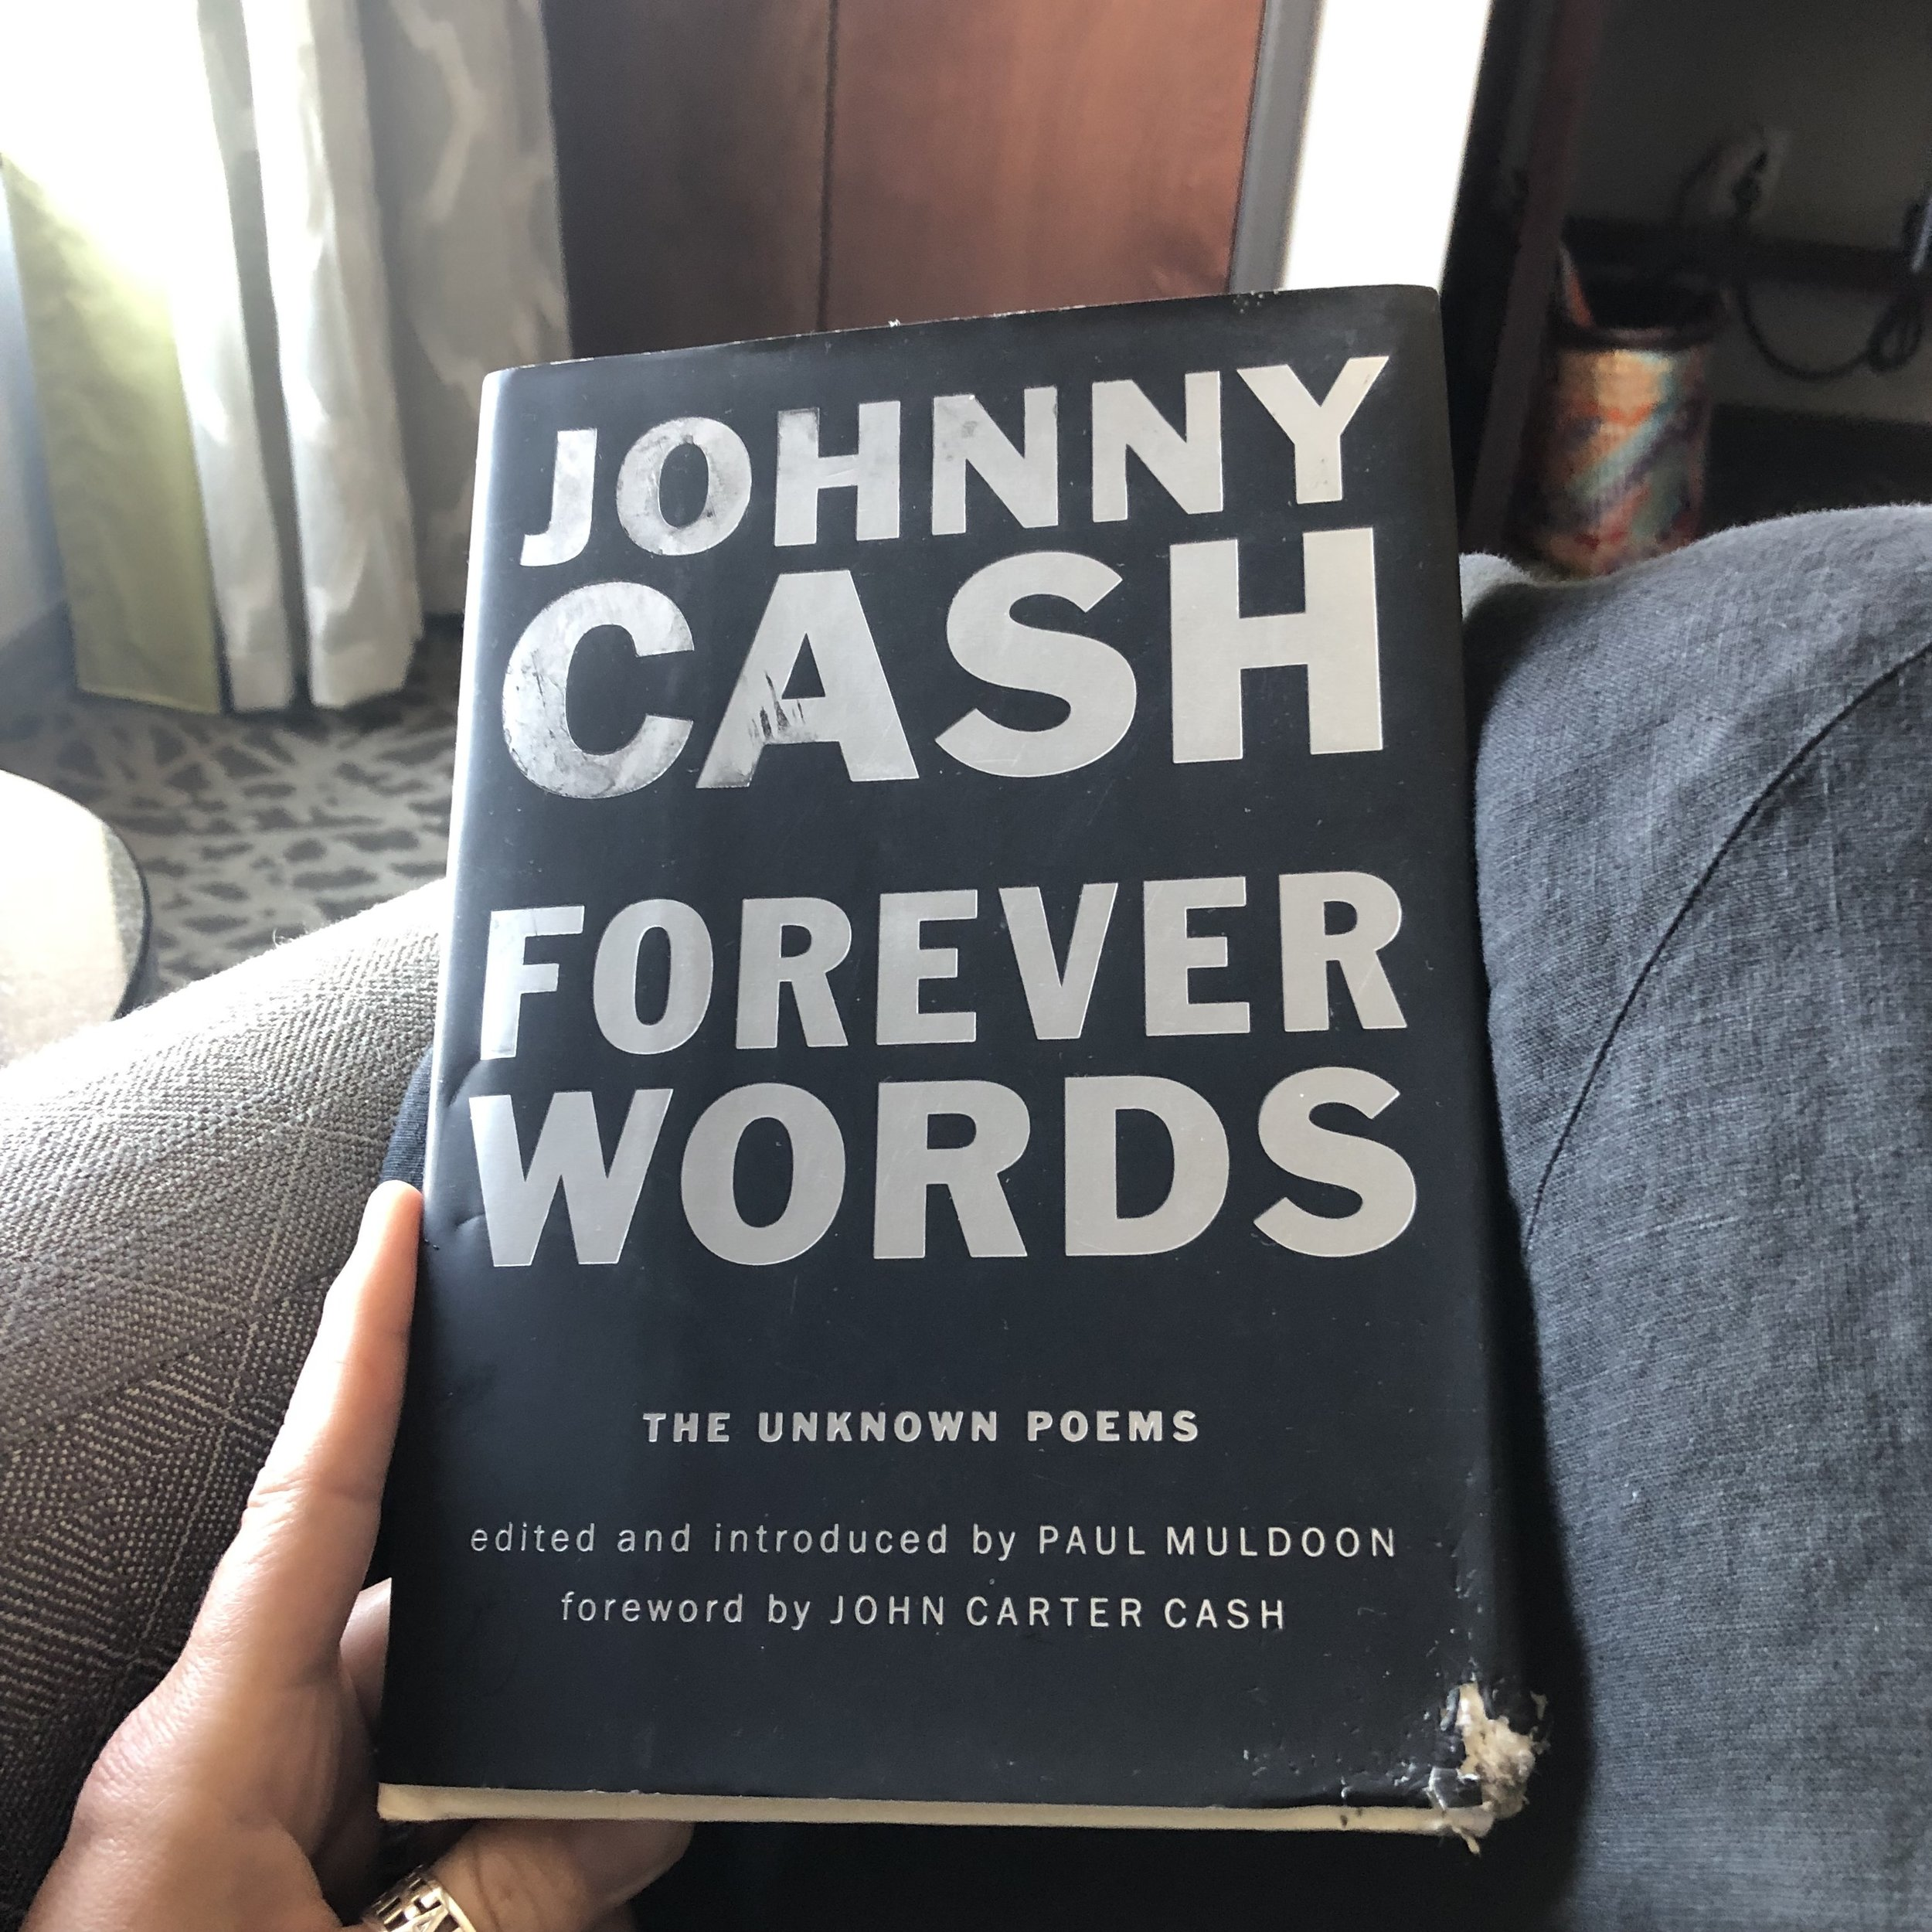 JohnnyCashForeverWords.JPG